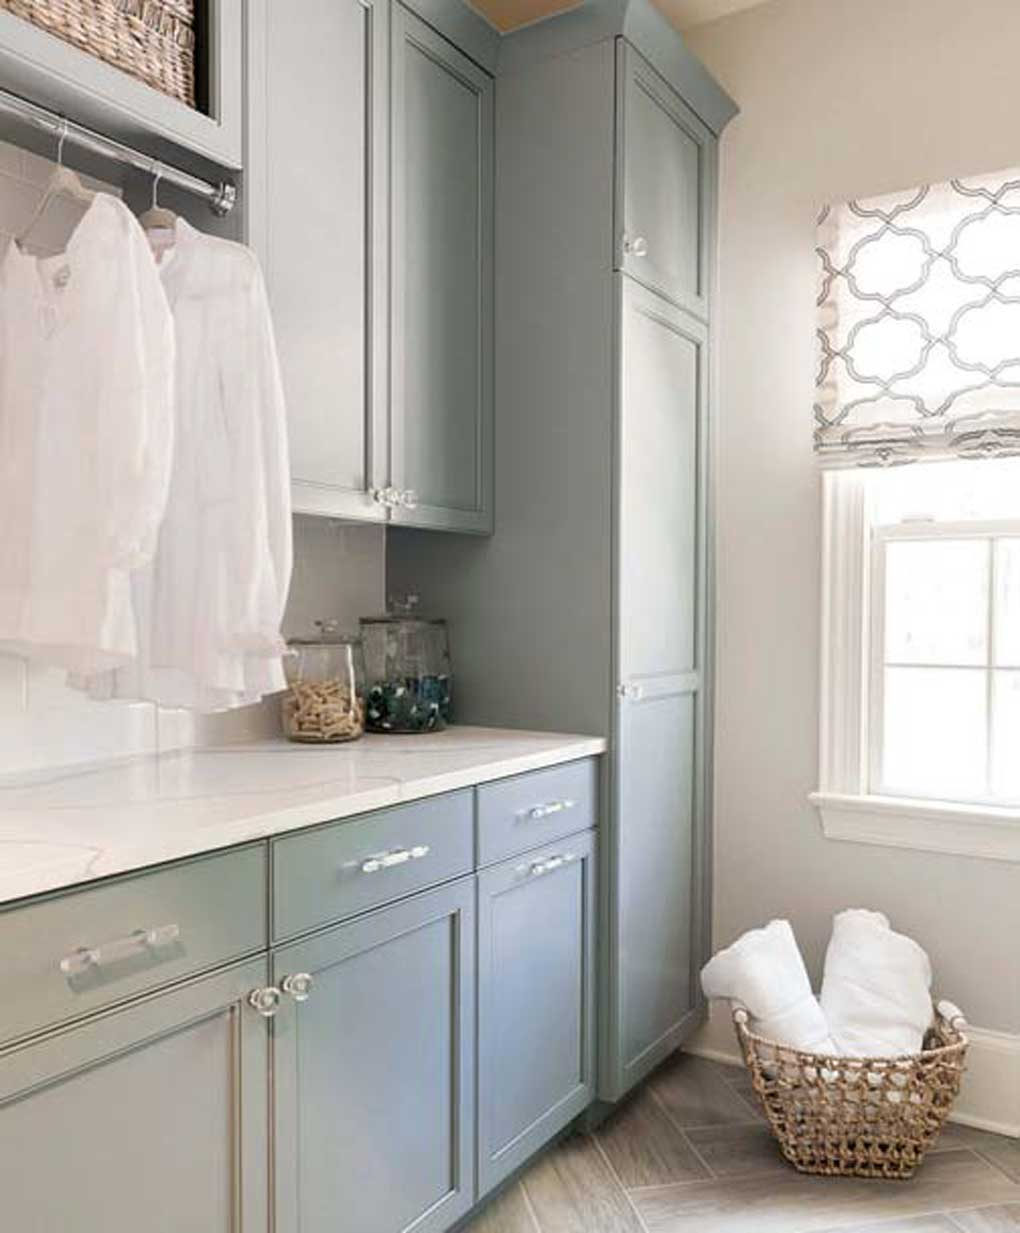 Clean and crisp laundry room with tile floor, blue cabinets and a wicker basket filled with white towels.